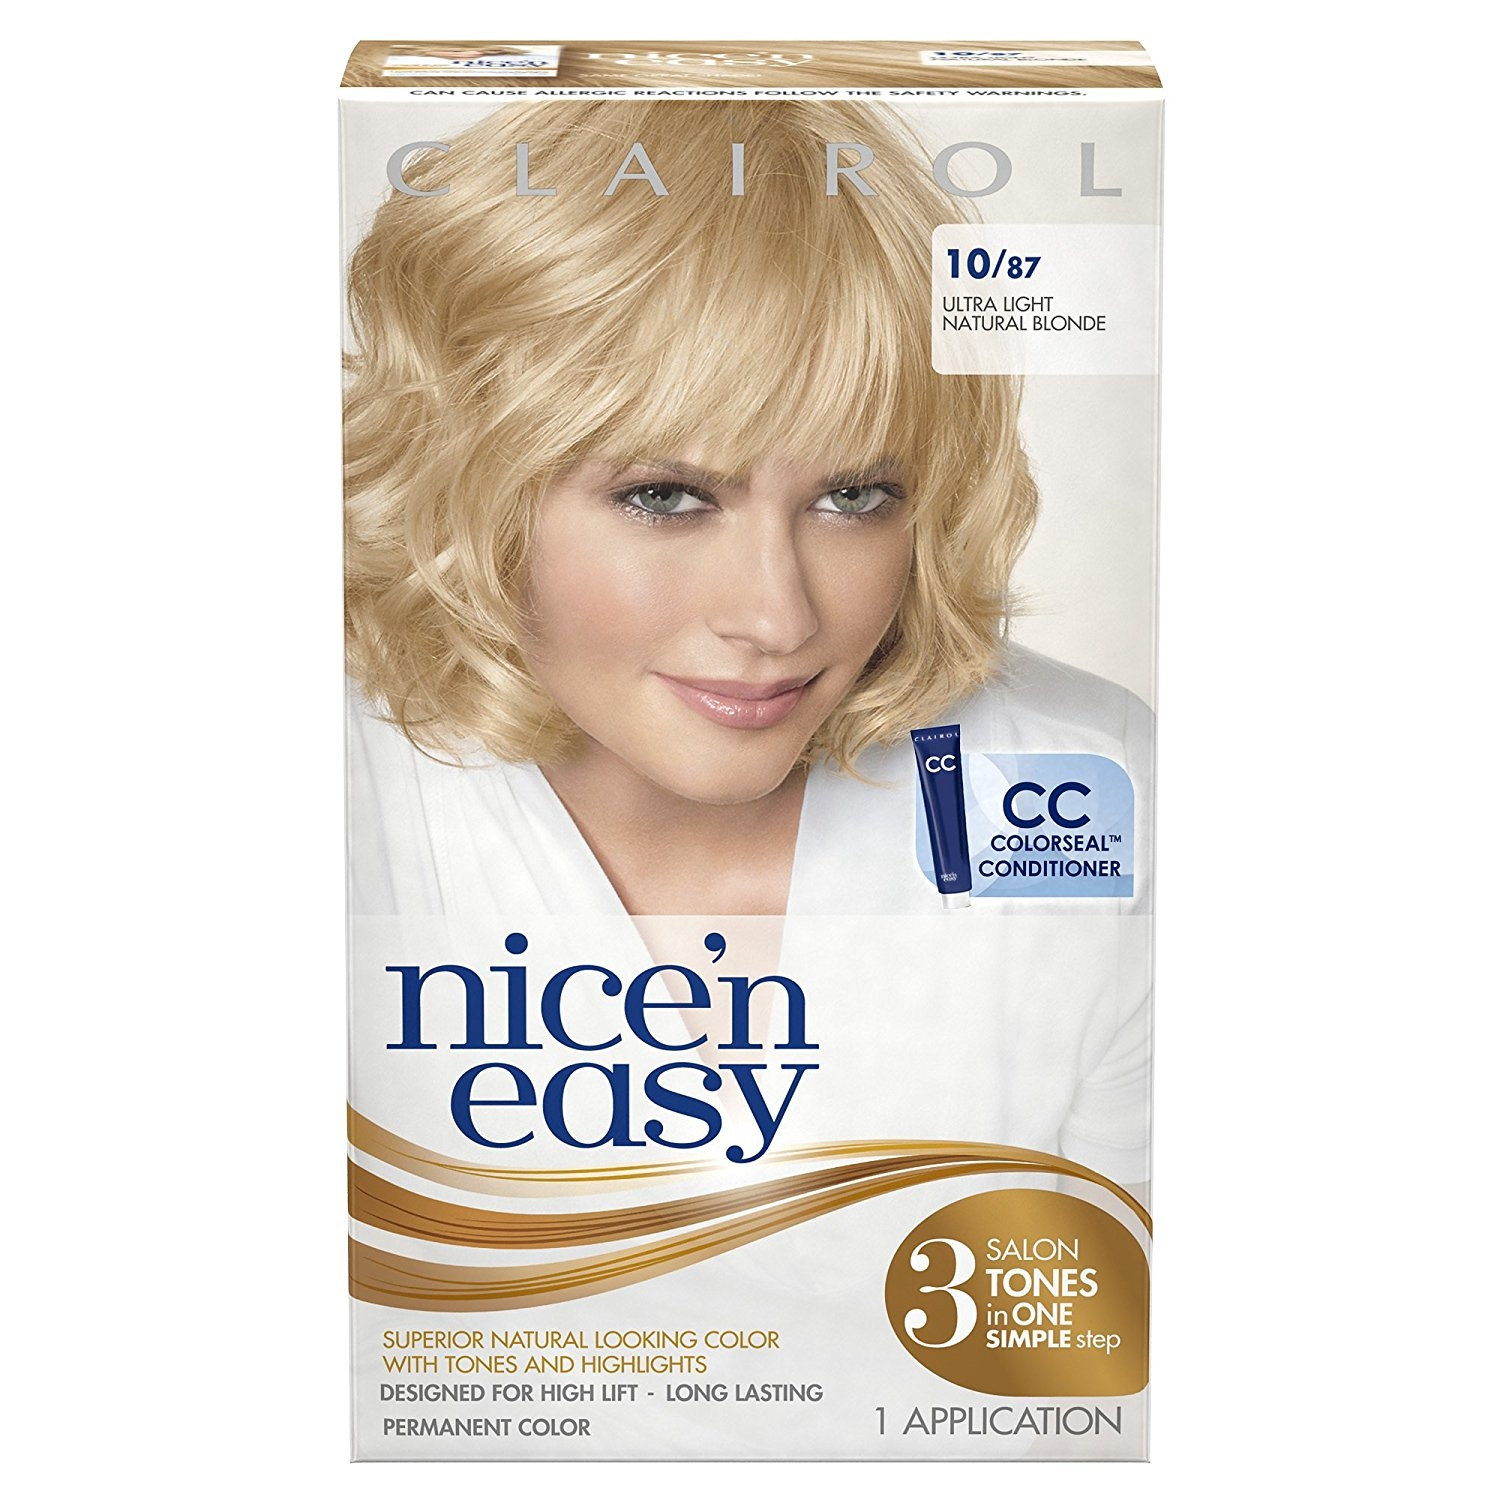 Clairol Nice 39n Easy Hair Color 1087 Ultra Light Natural Blonde